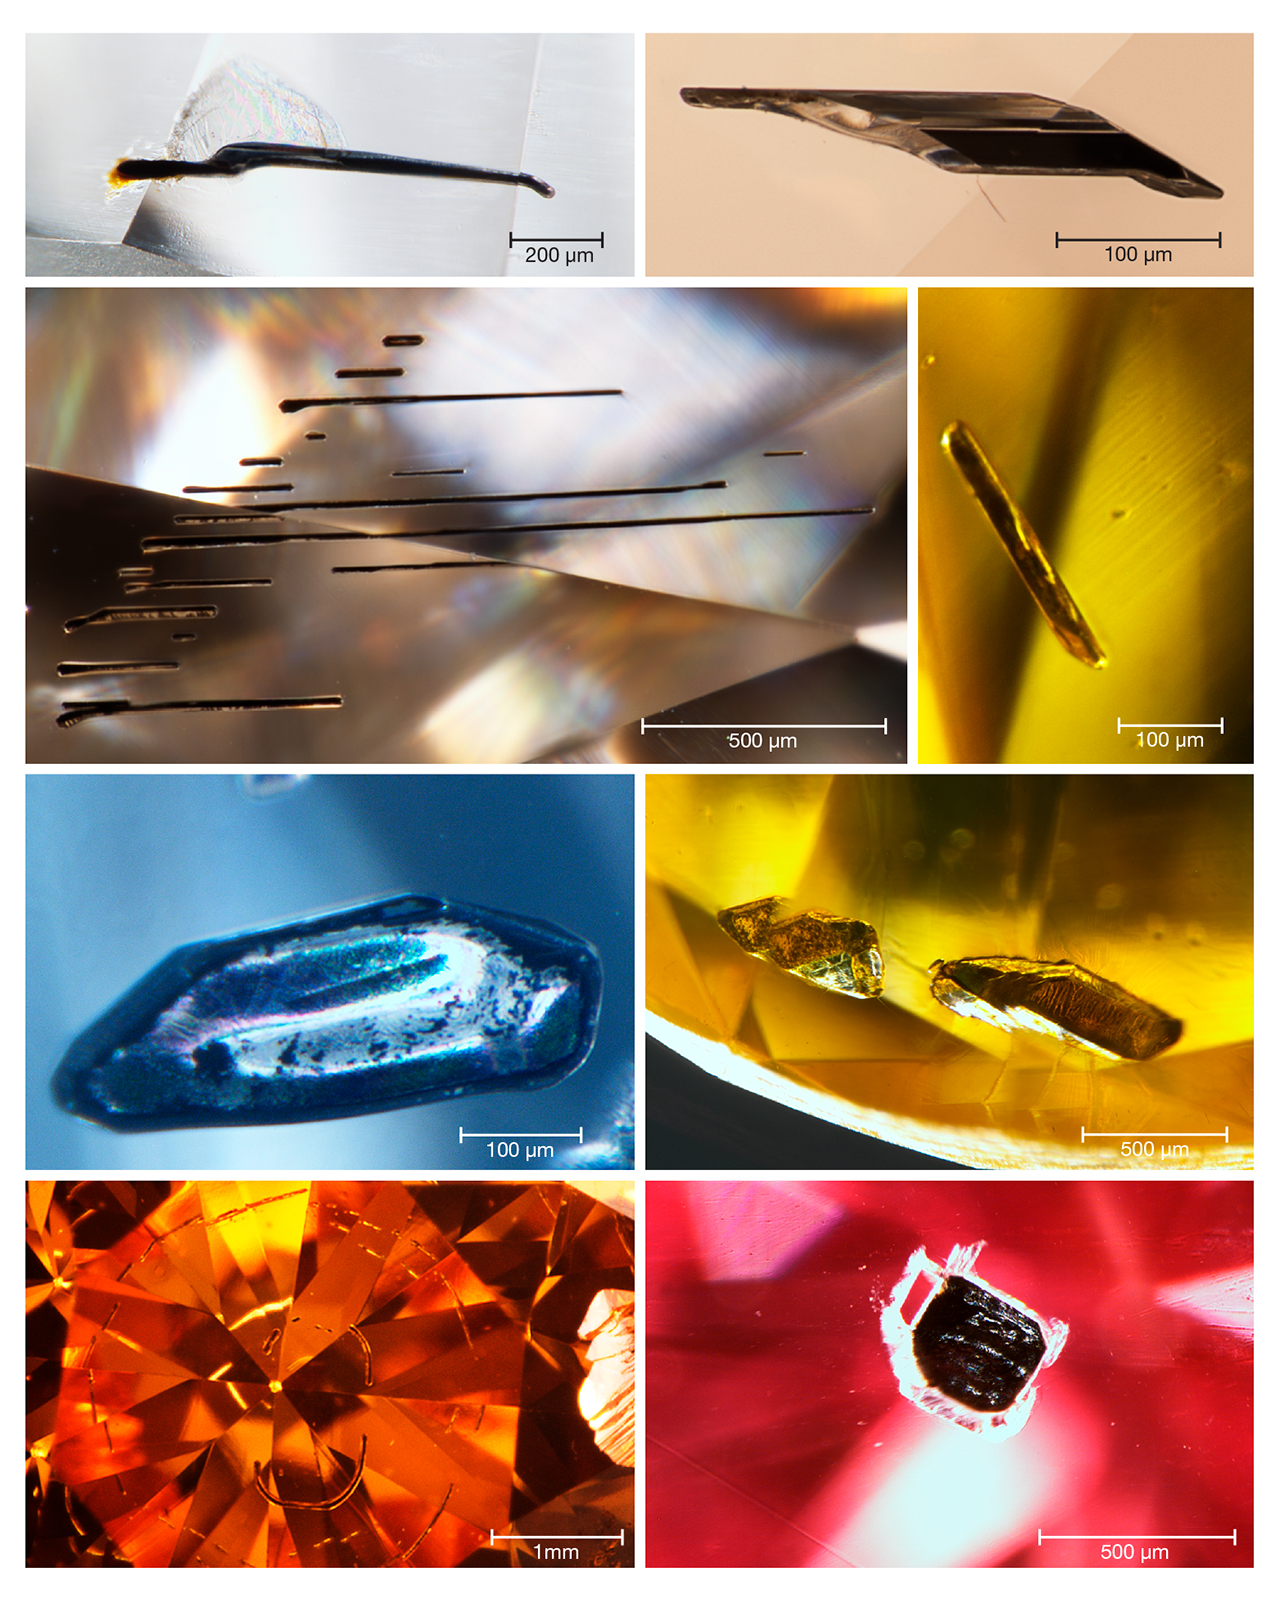 Metallic inclusions in HPHT synthetics